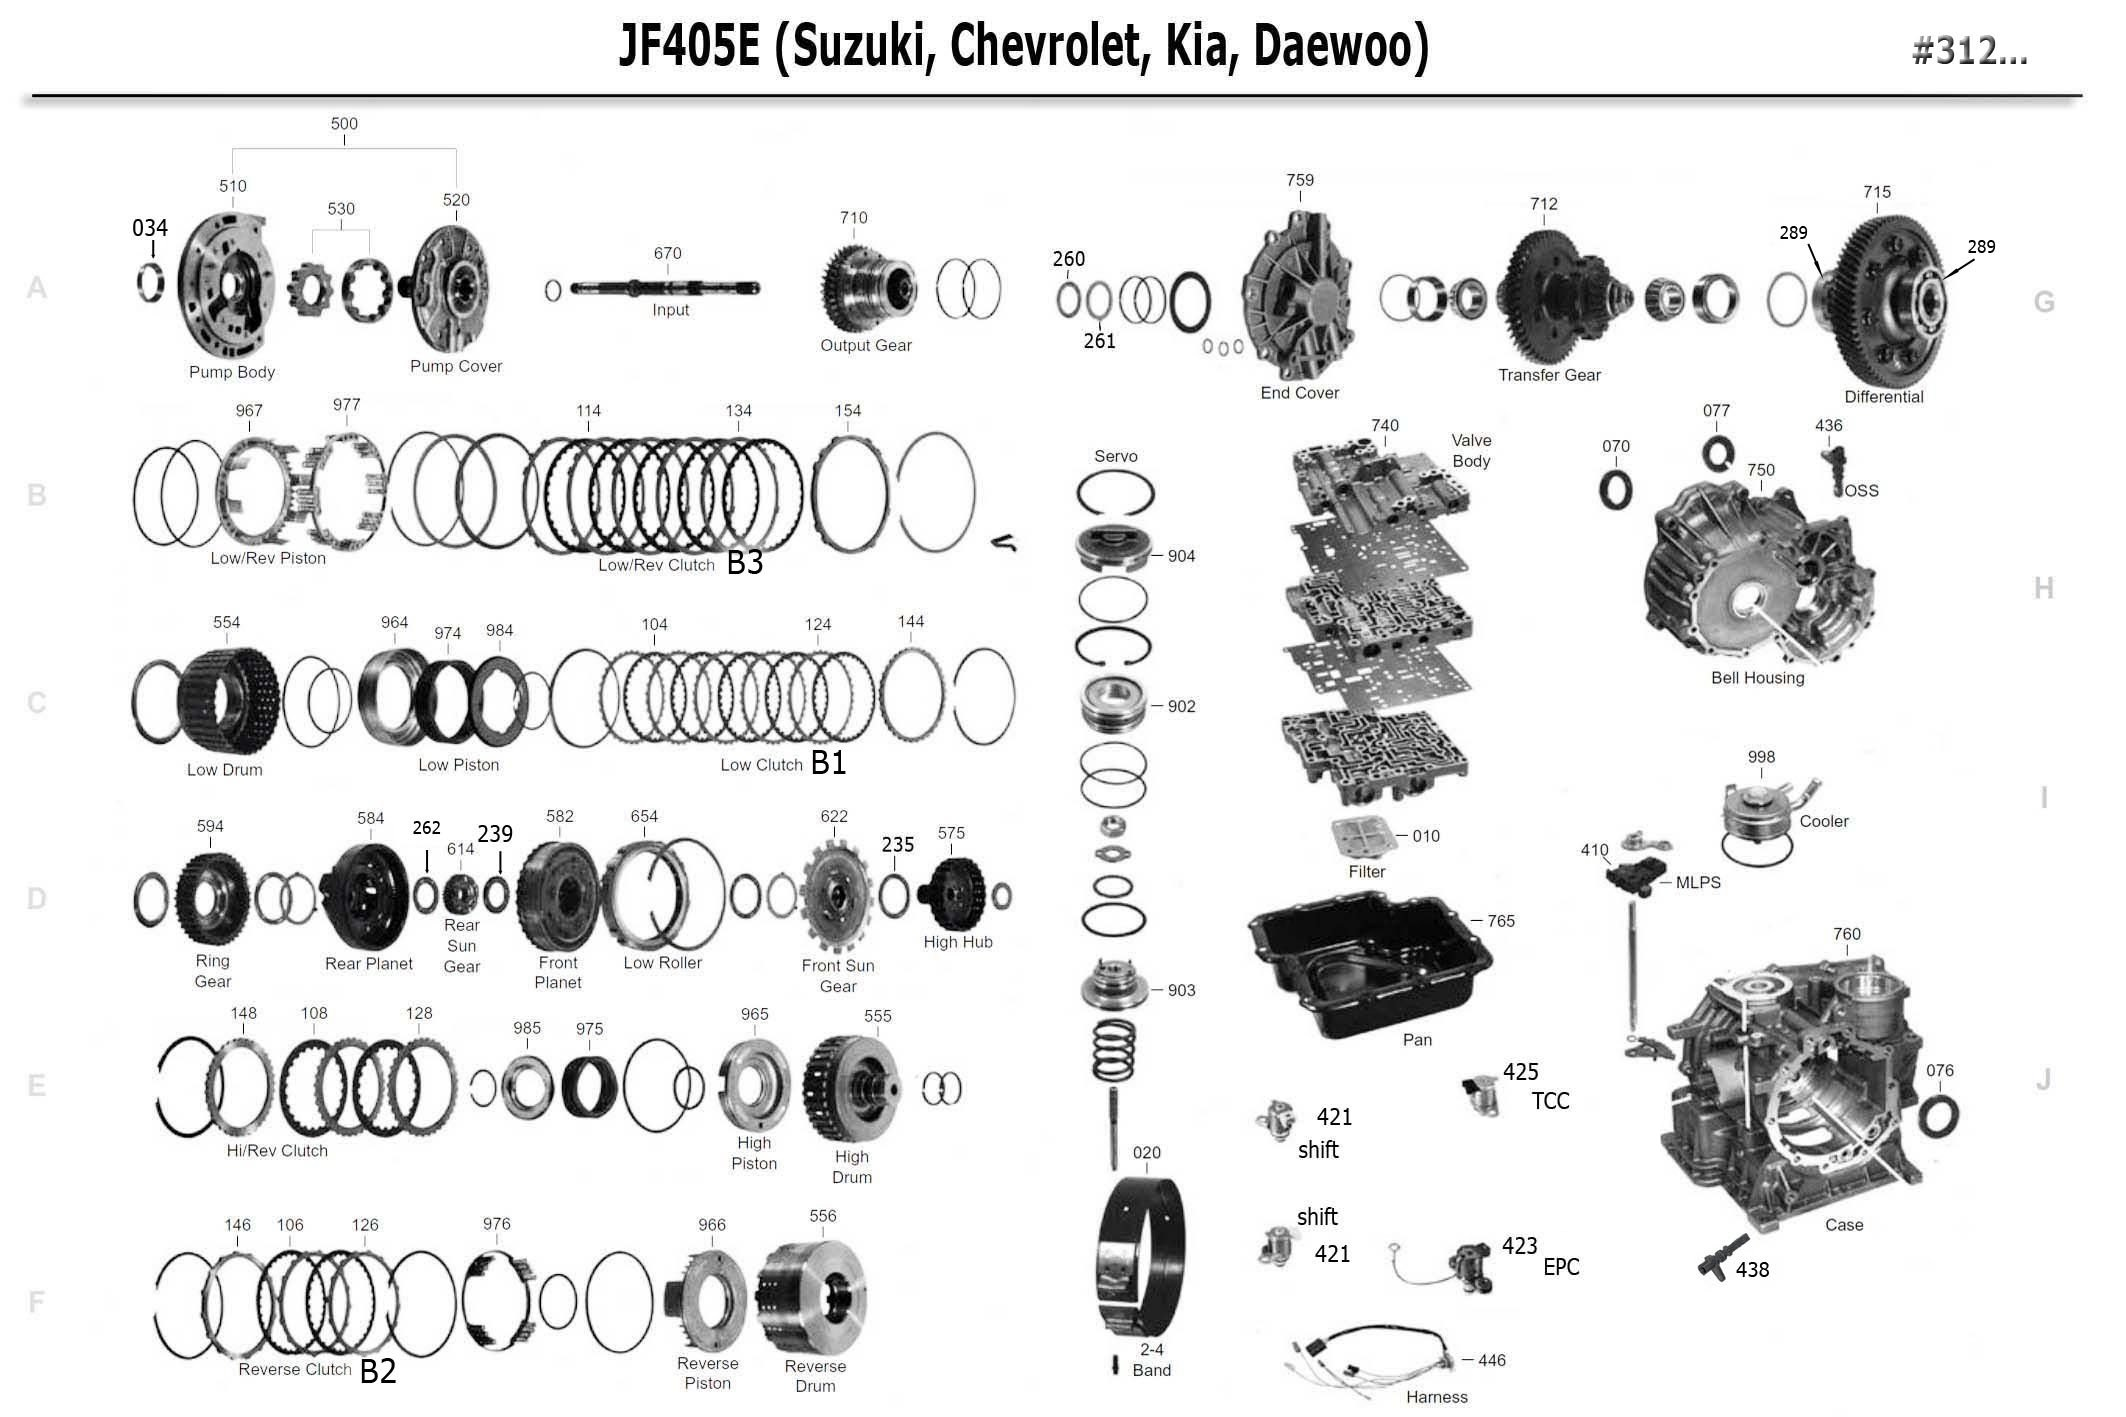 JF405E Transmission parts, repair guidelines, problems